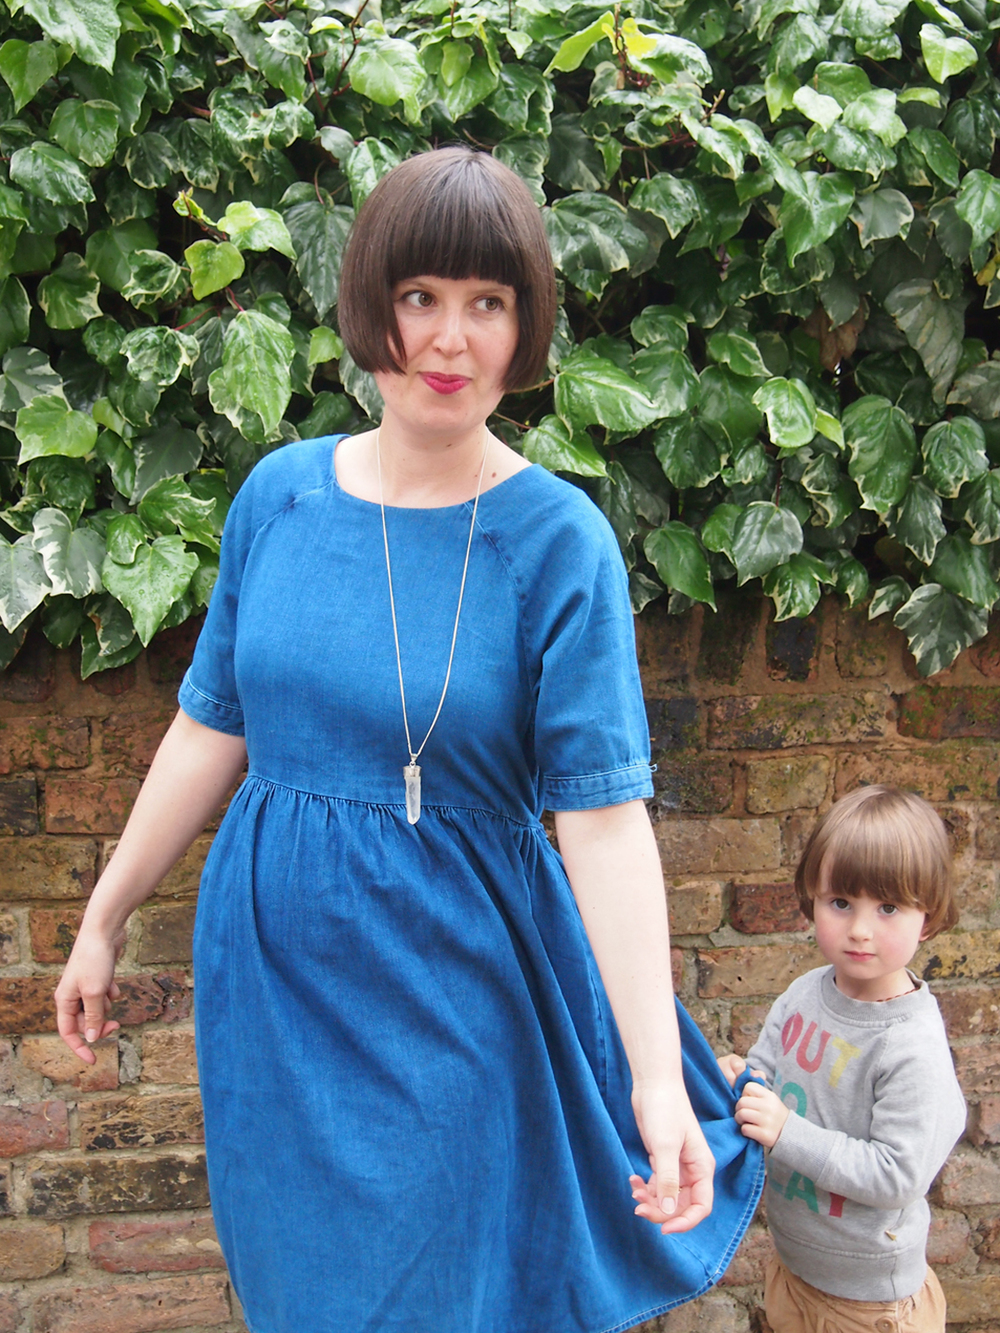 My first Maternity Wear buy this time round - Maternity Smock Dress in Denim.